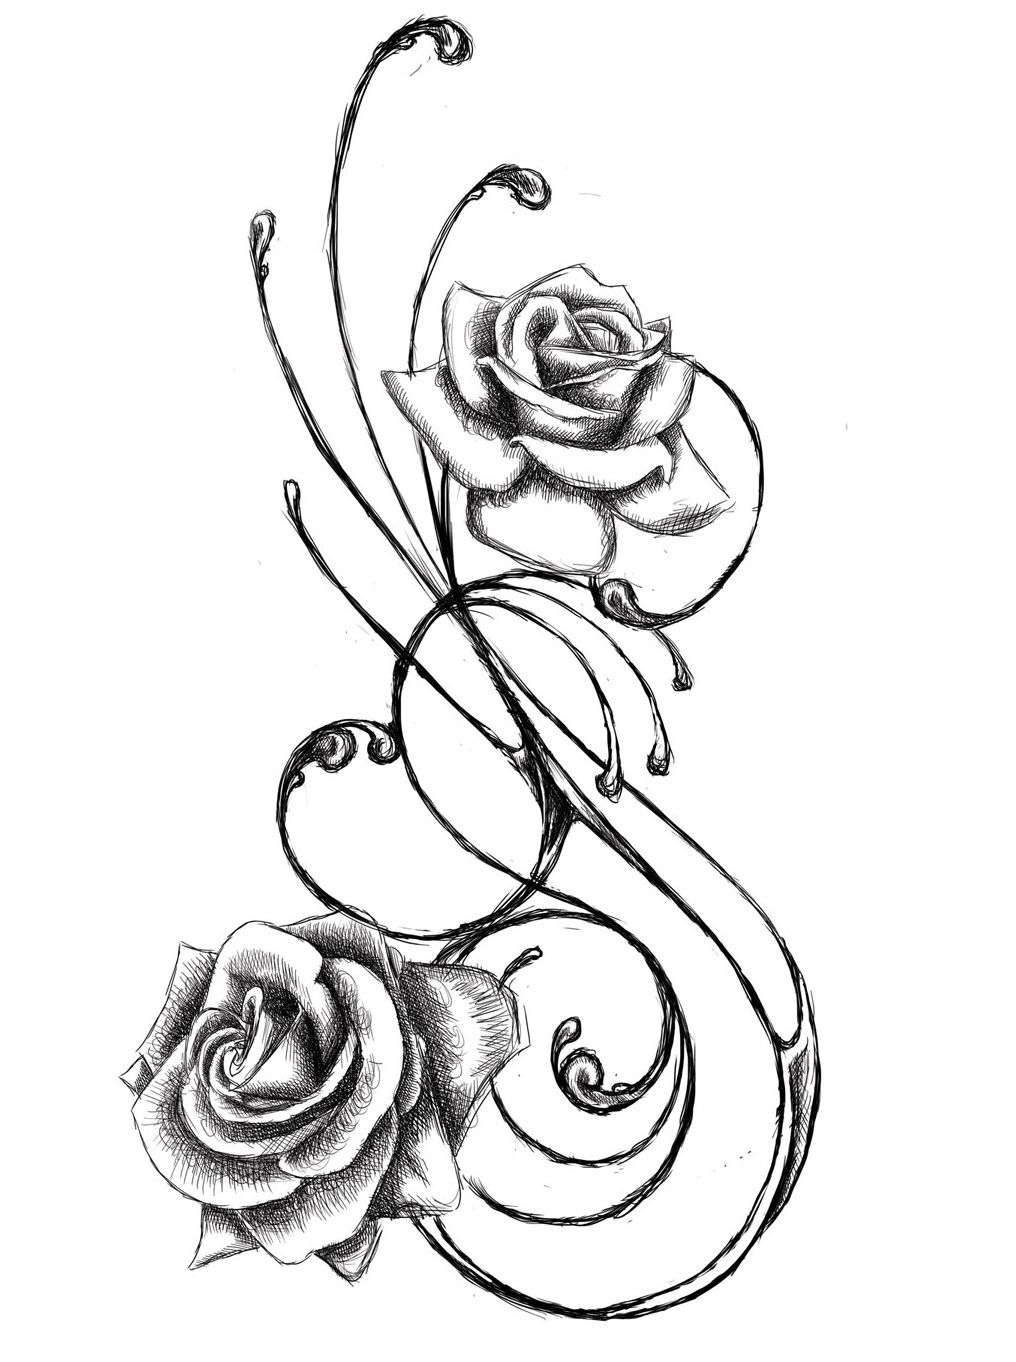 Flower Tattoo Design - see more designs on http://thebodyisacanvas.com